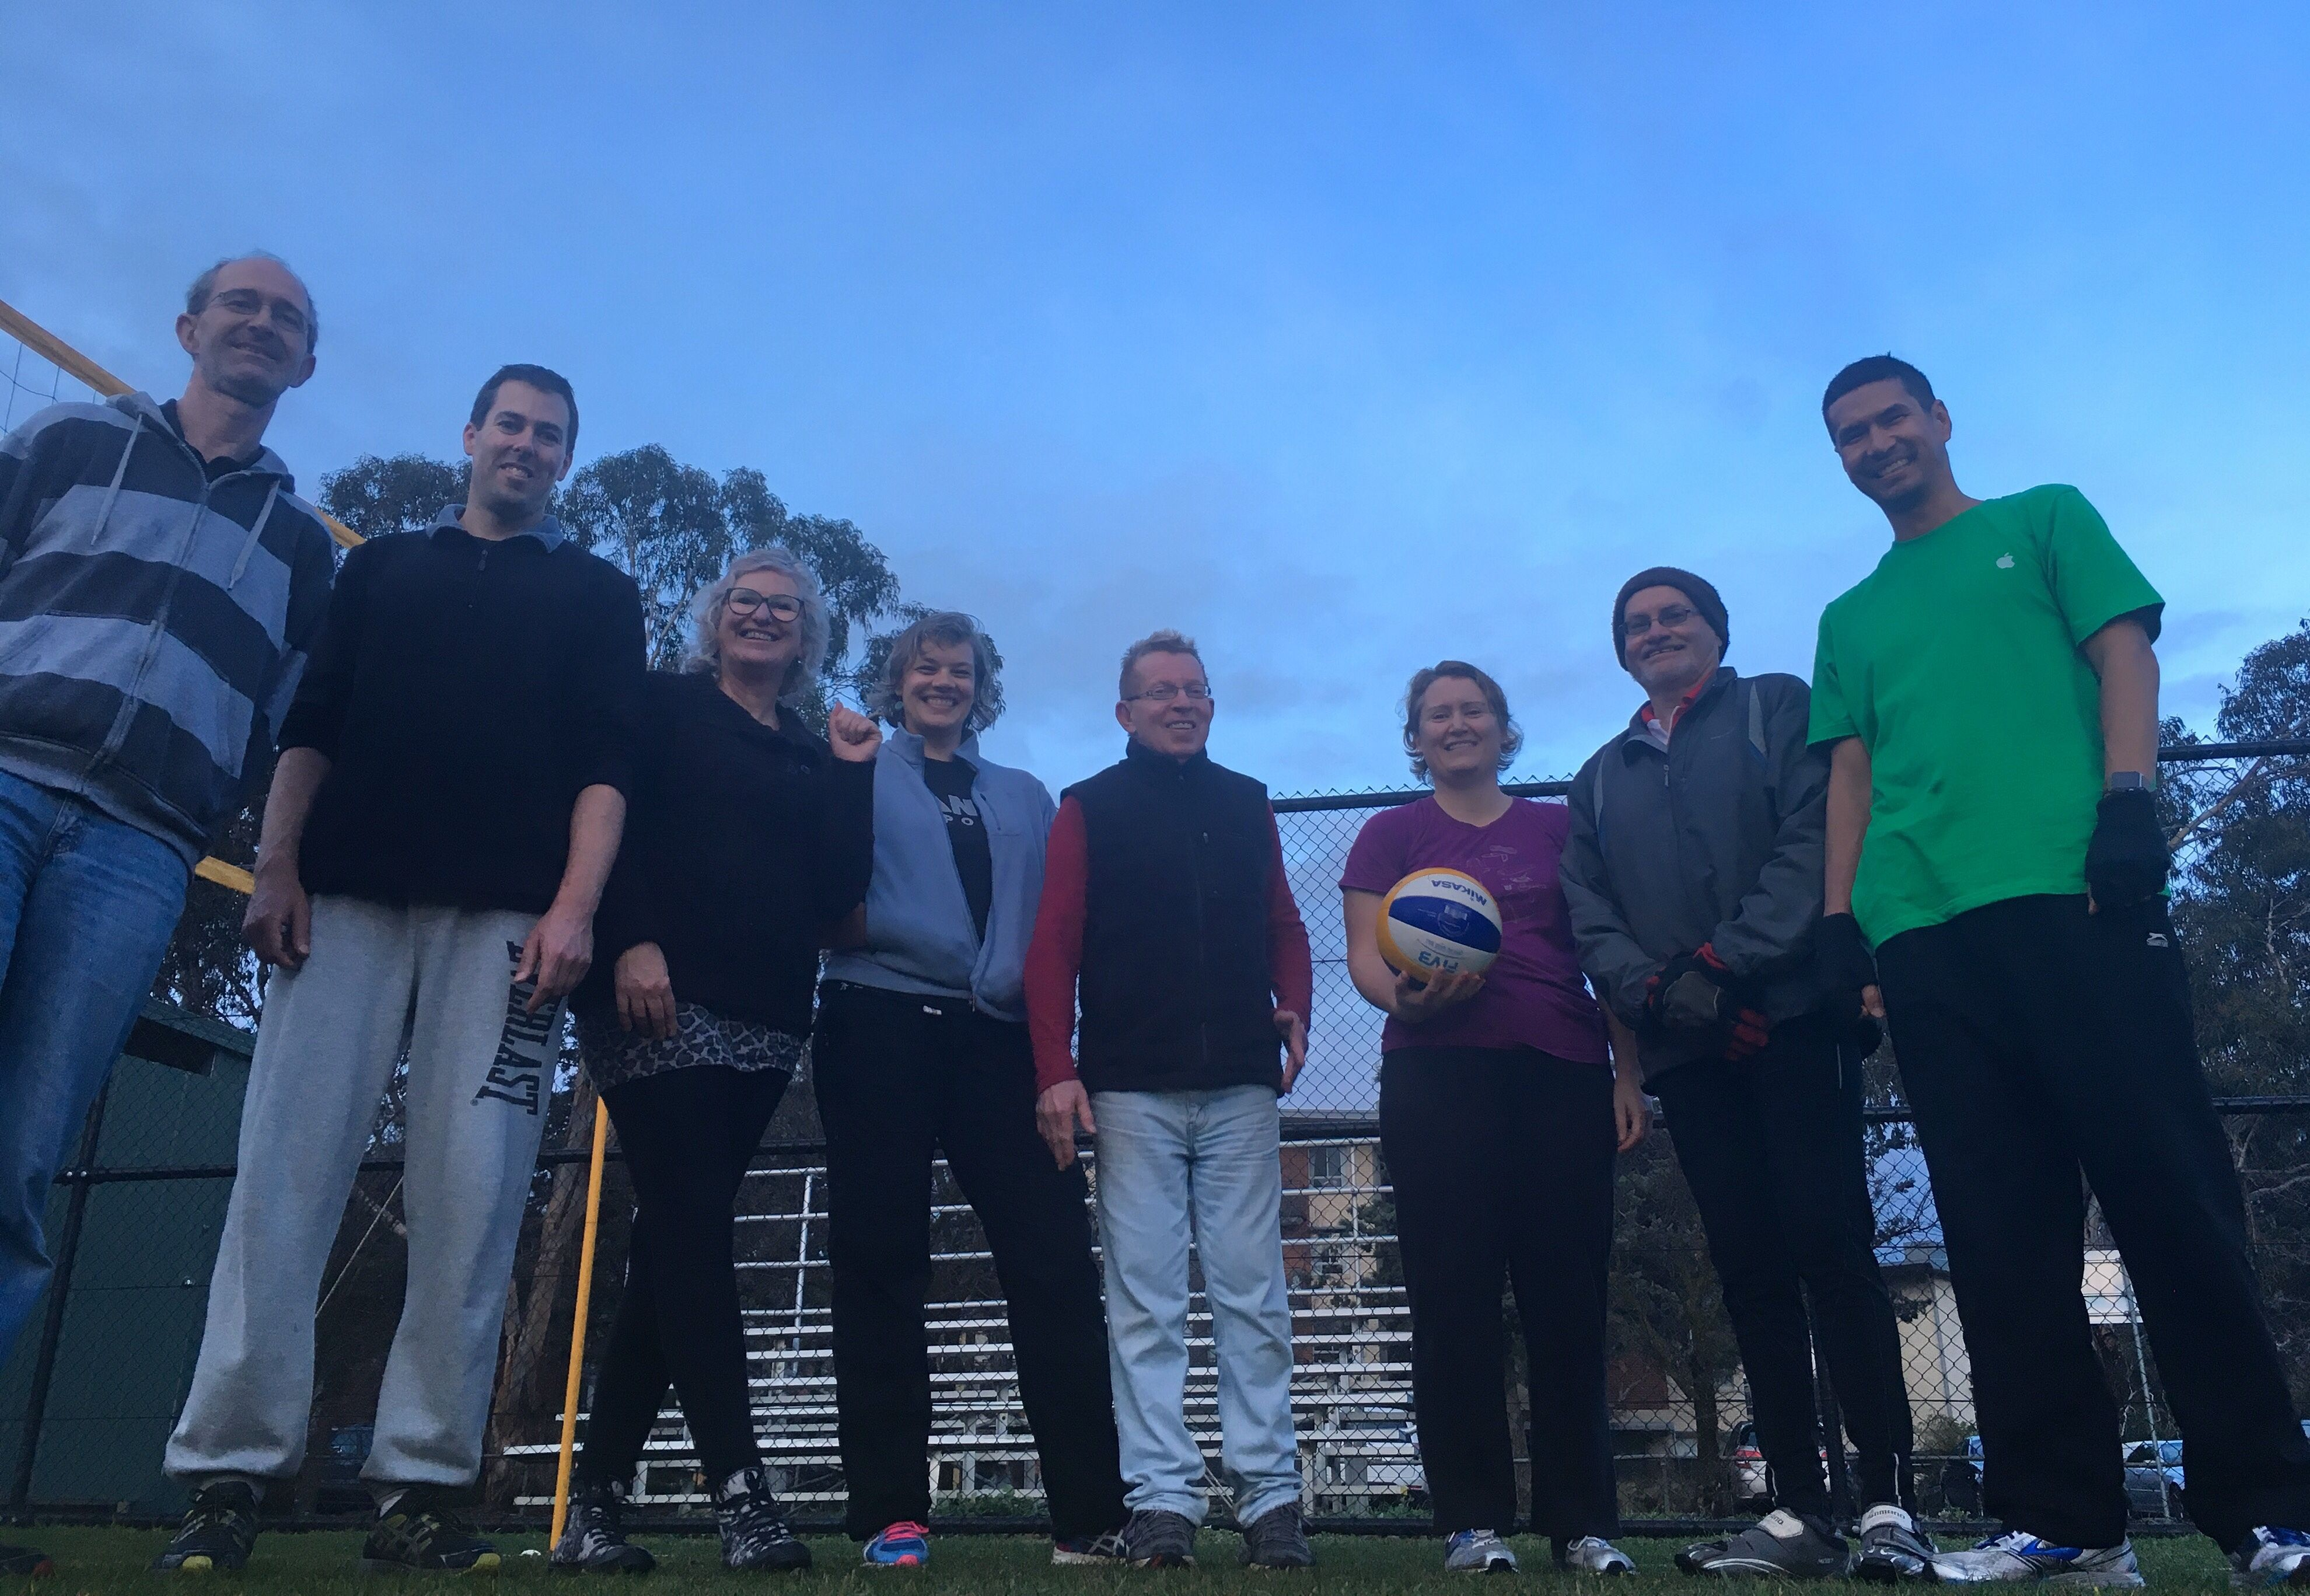 Canberra Spikers' Outdoor Social Volleyball